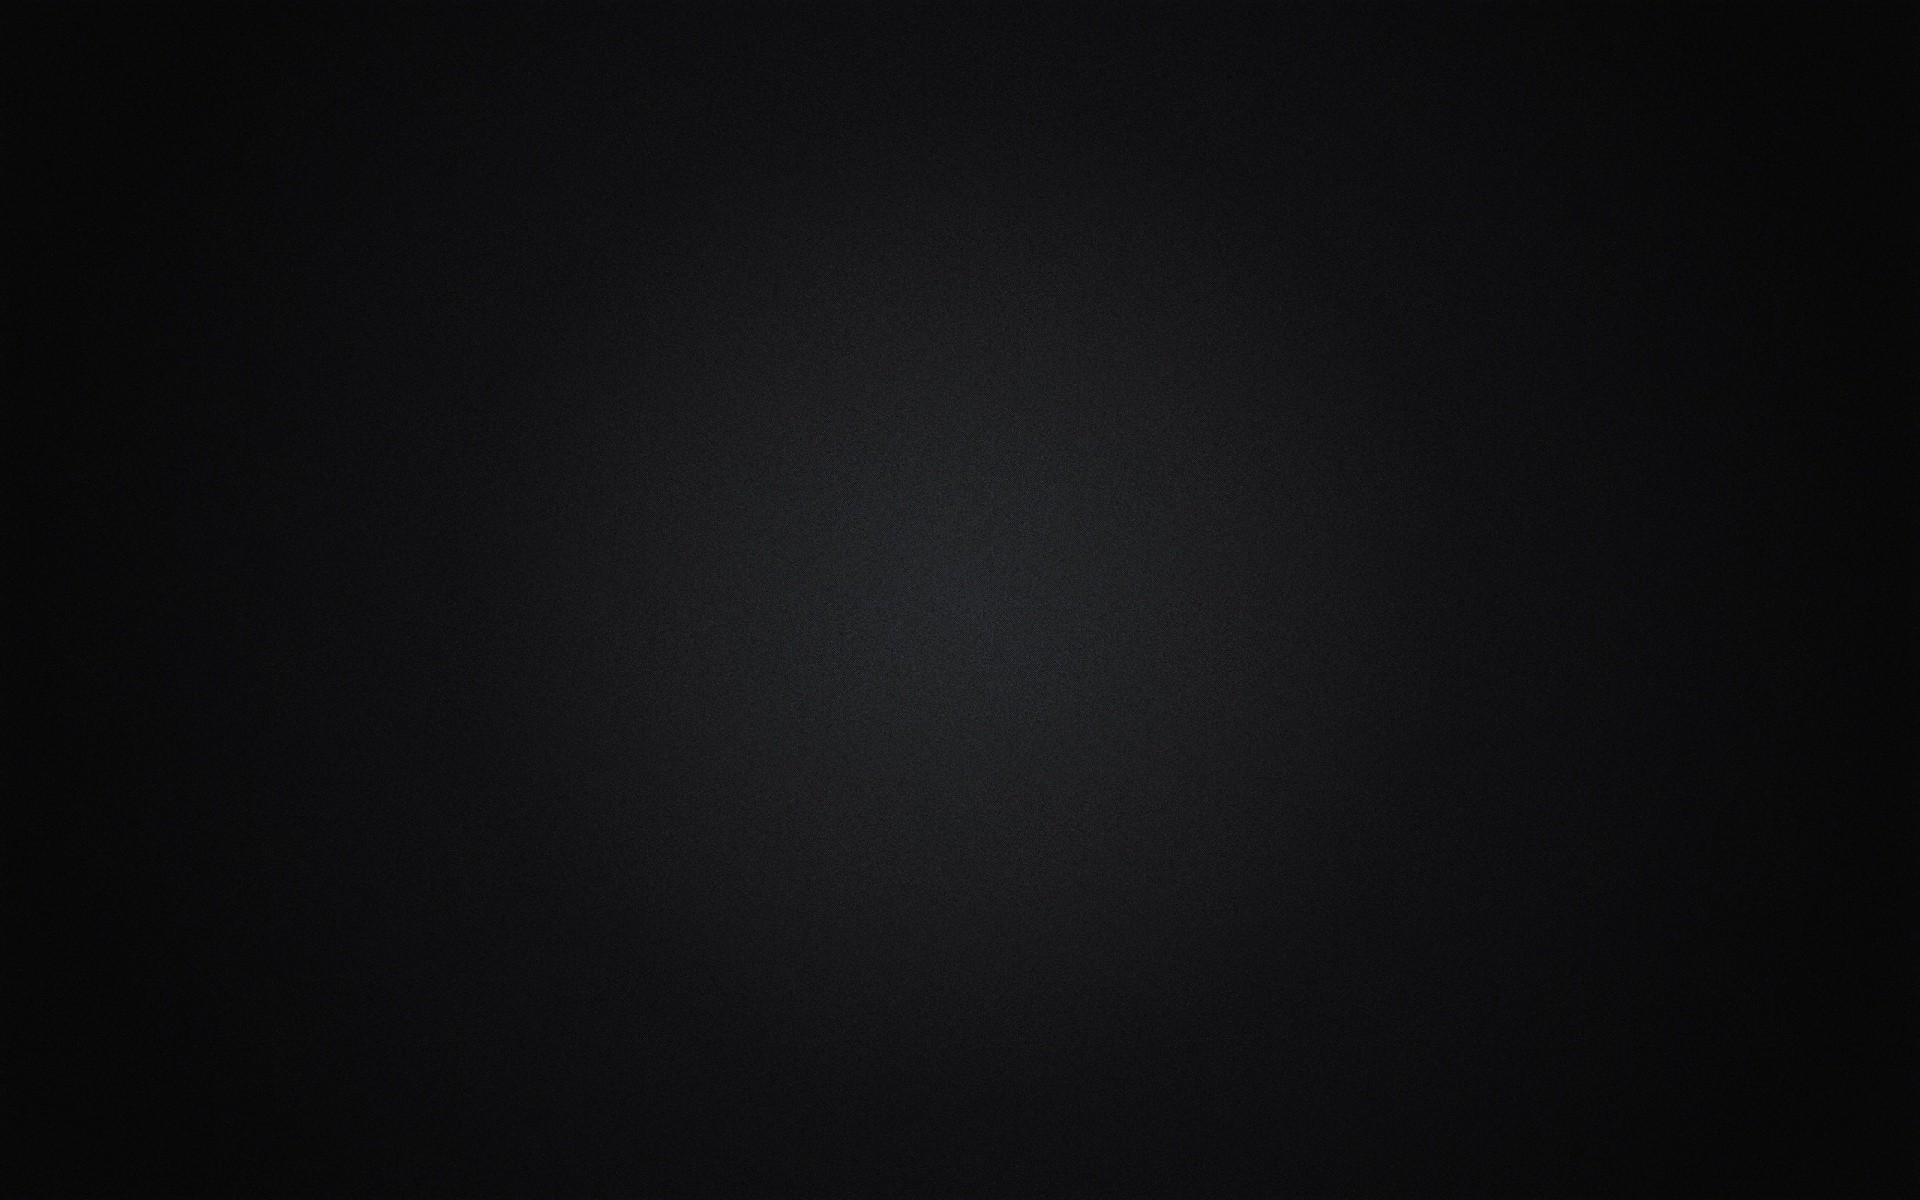 Cool Black Wallpapers Full Screen (60+ images)